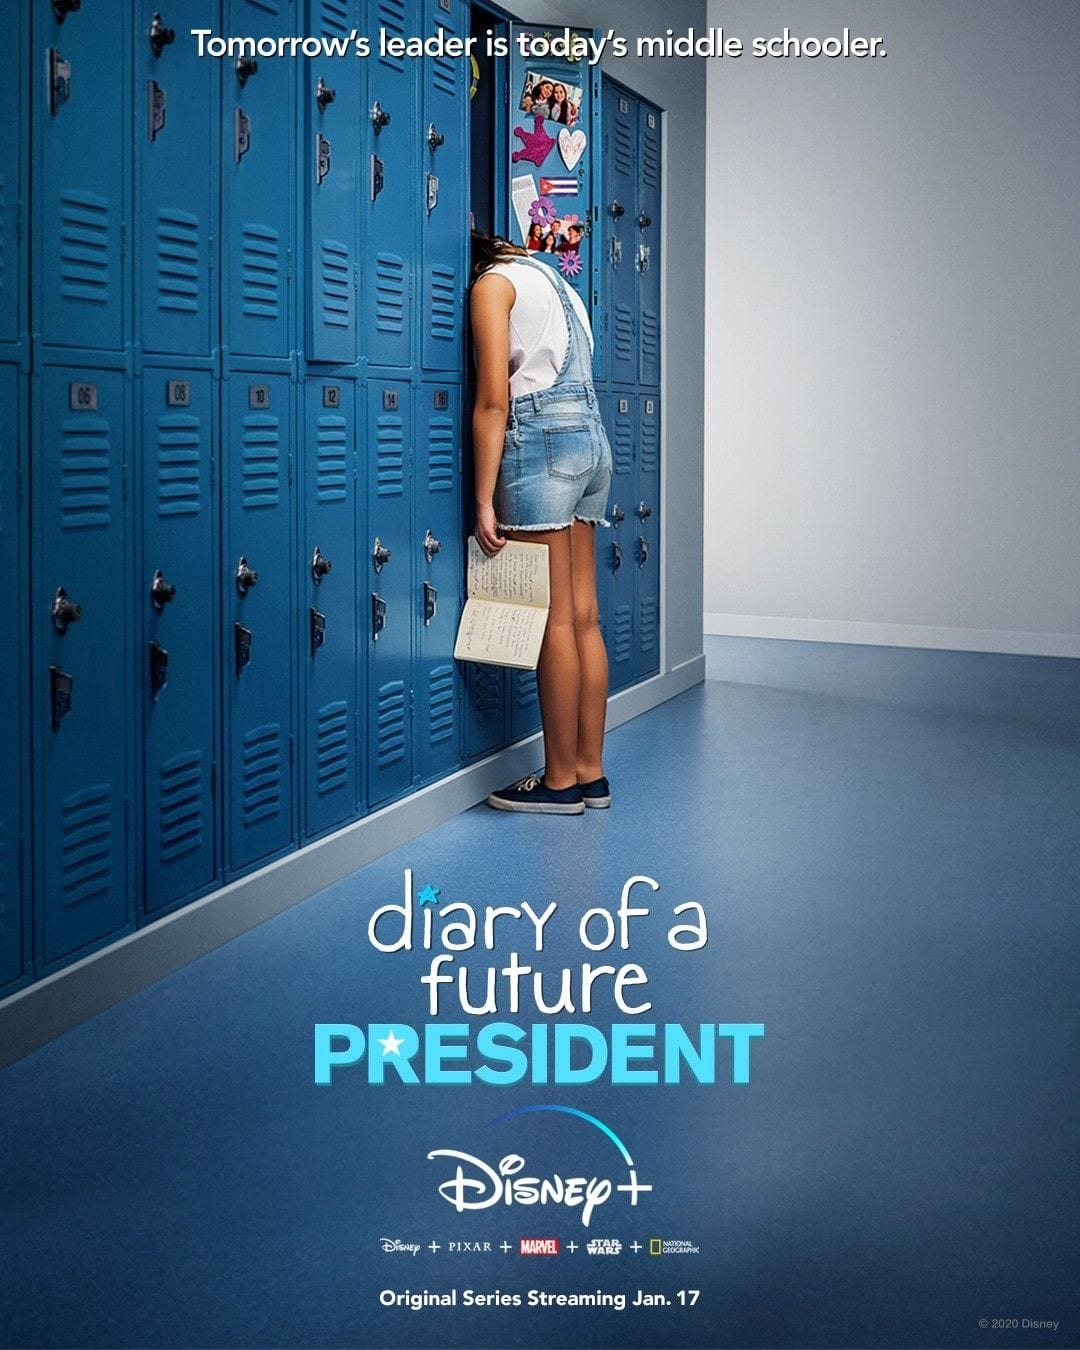 Diary of a Future President teaser image